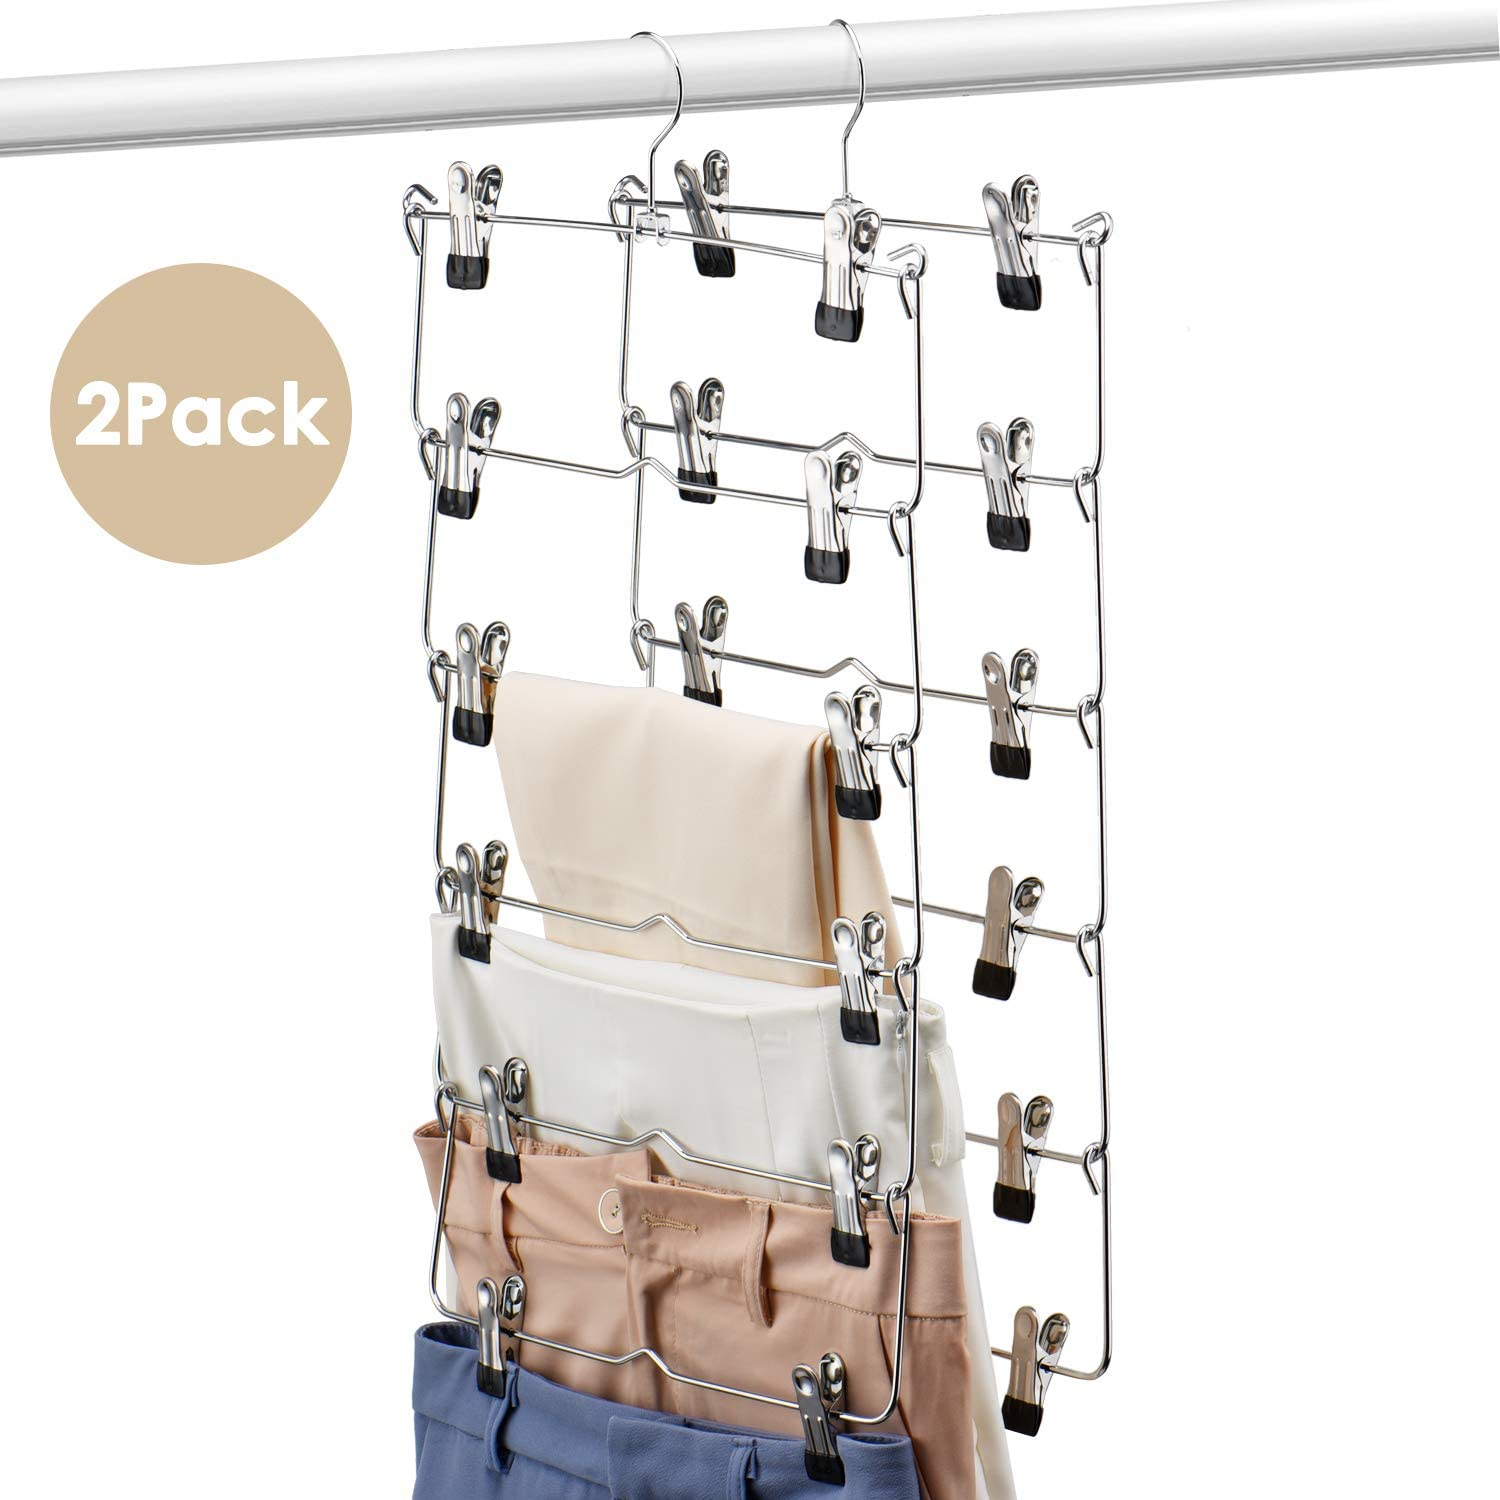 HOUSE DAY 6 Tiers Skirt Hangers with Clips Space Saving Pants Hangers,2 Pack Multi Slack Skirt Hanger with Clips Metal Pants Hnager for Slack, Trouser, Jeans,Towels,Sliver